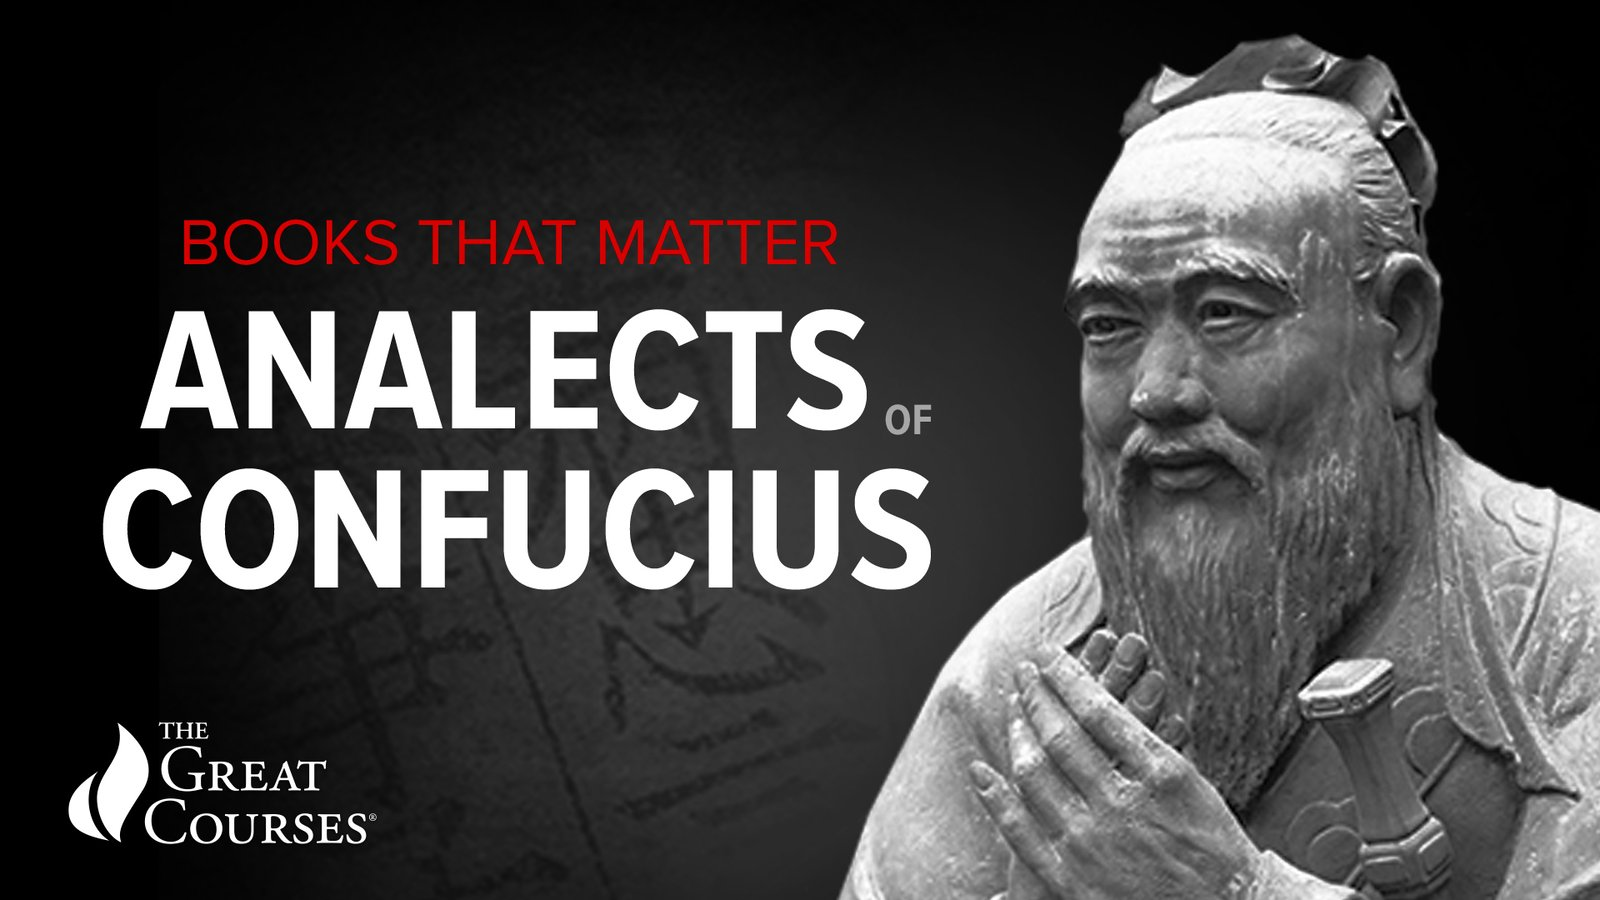 Books that Matter: The Analects of Confucius